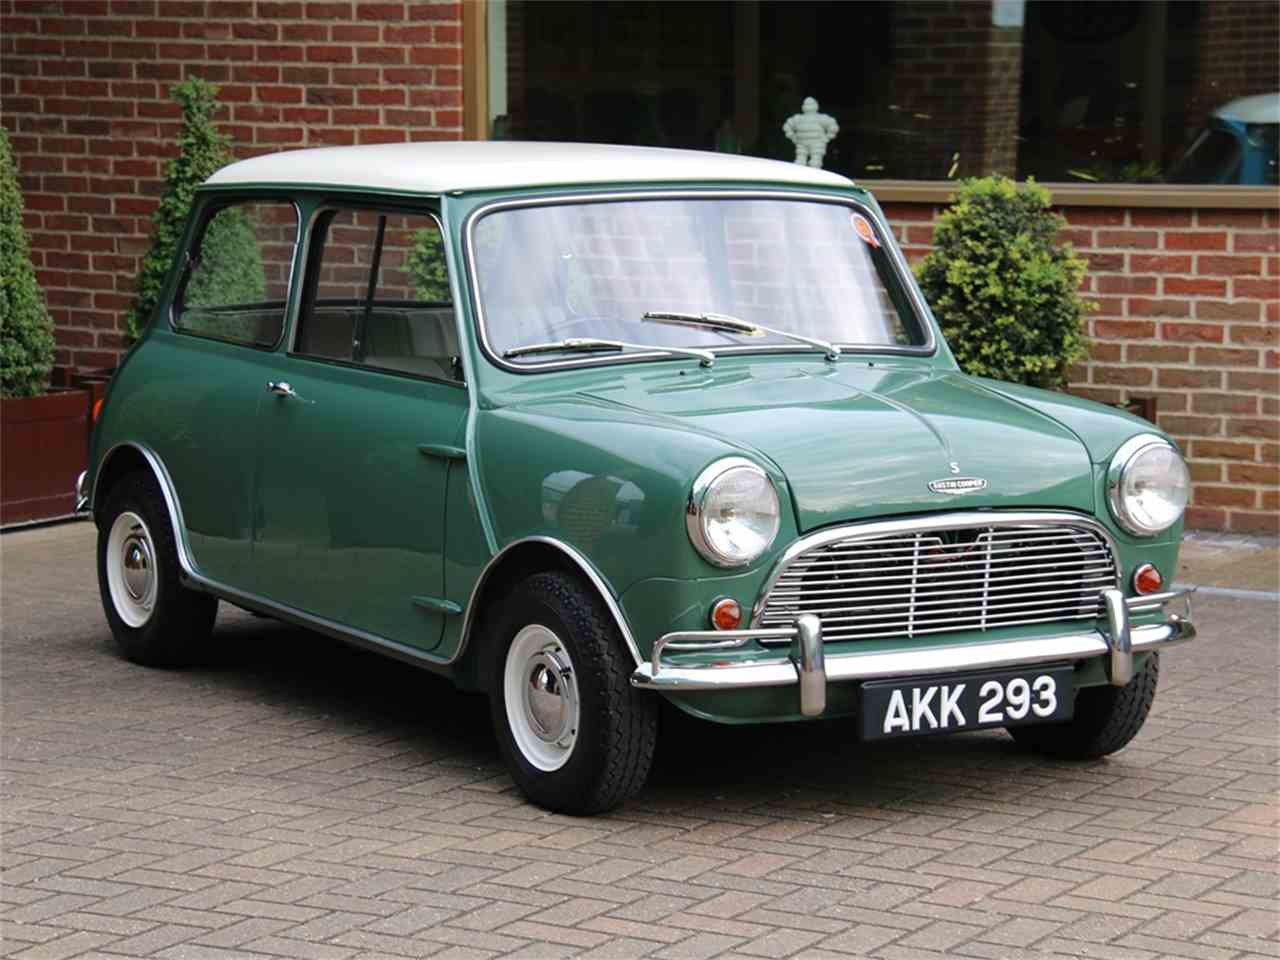 7147280-1964-austin-and-morris-mk-1-mini